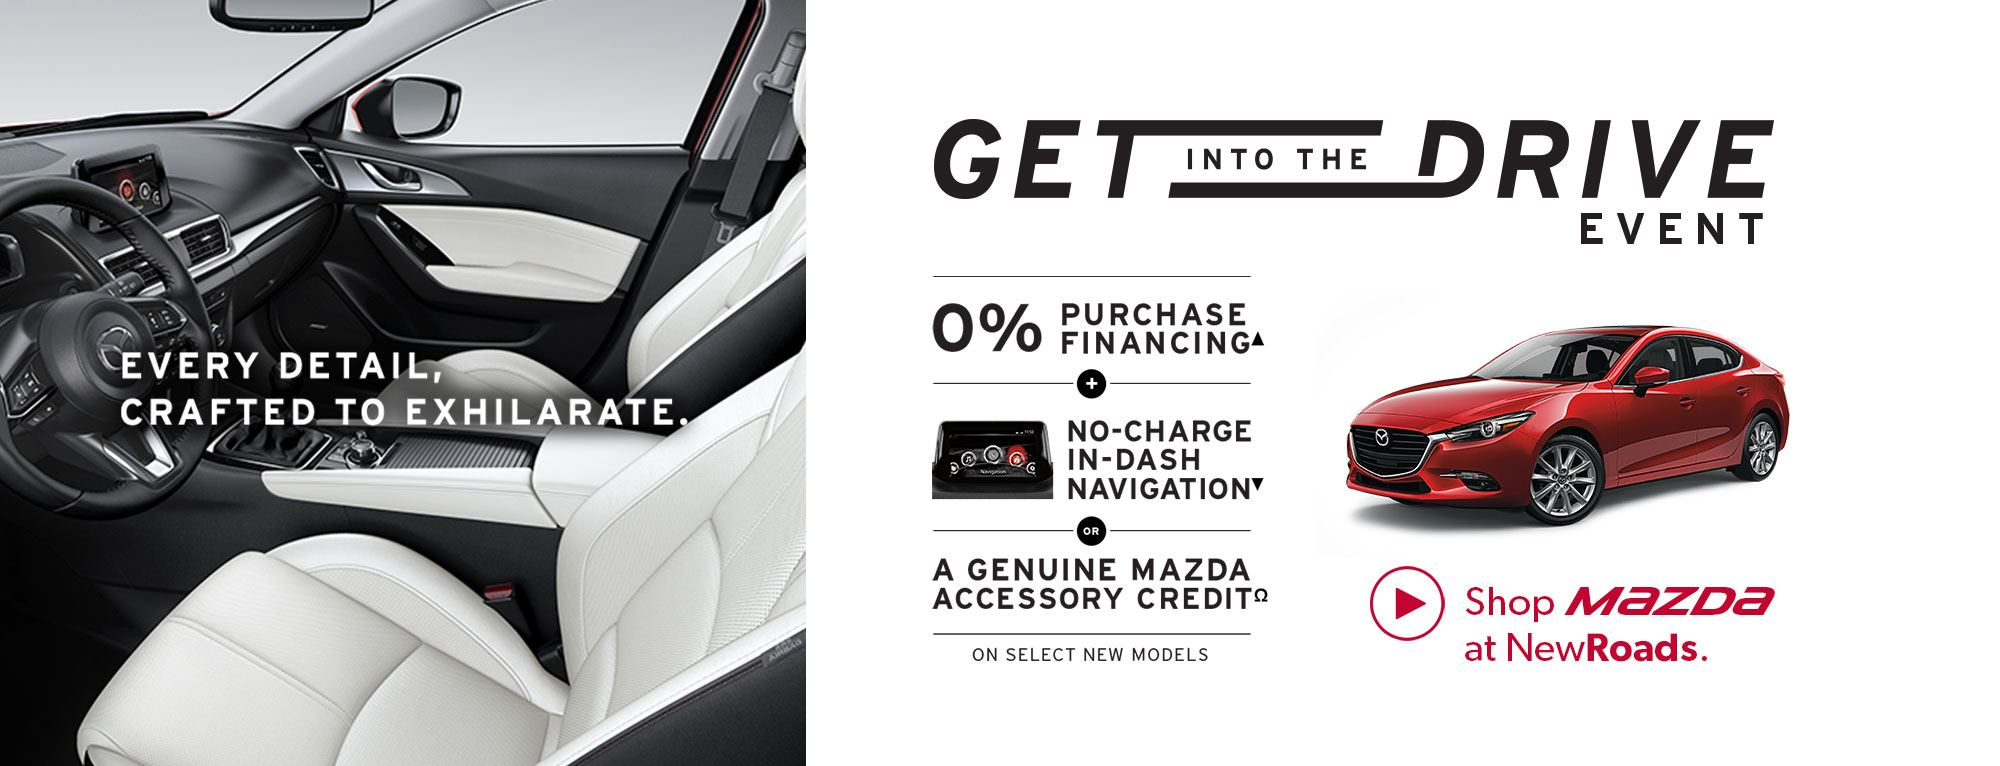 Mazda's Get into the Drive Event